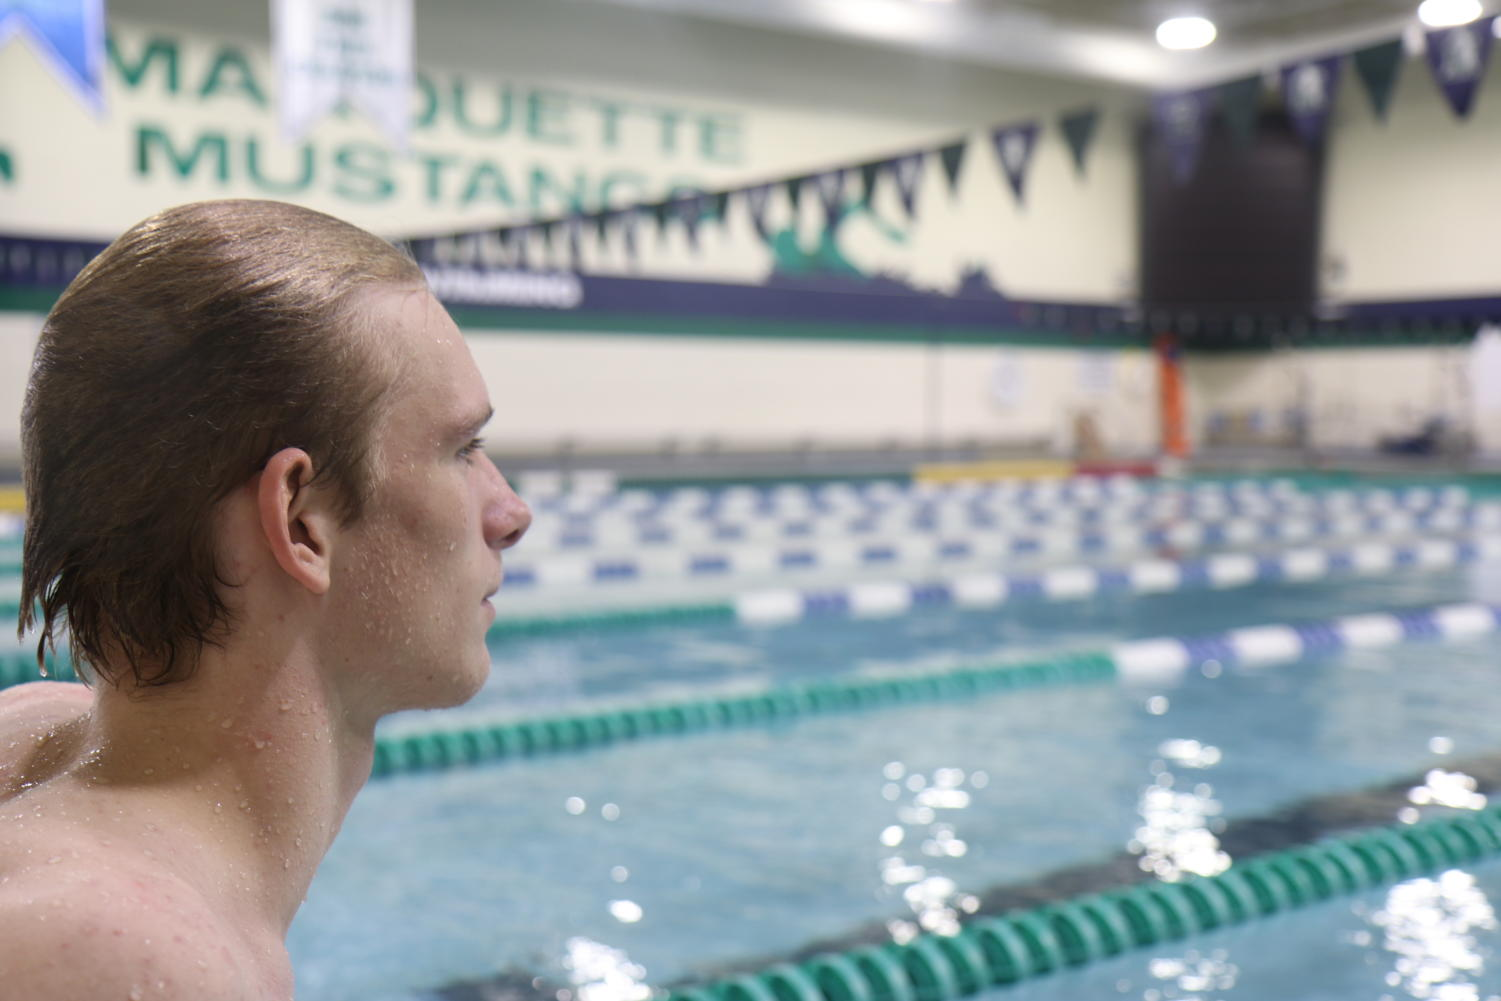 Simon Hermansen, junior, looks at the MHS mustangs pool before their meet on Tuesday against Fort Zummwalt West, where they won.